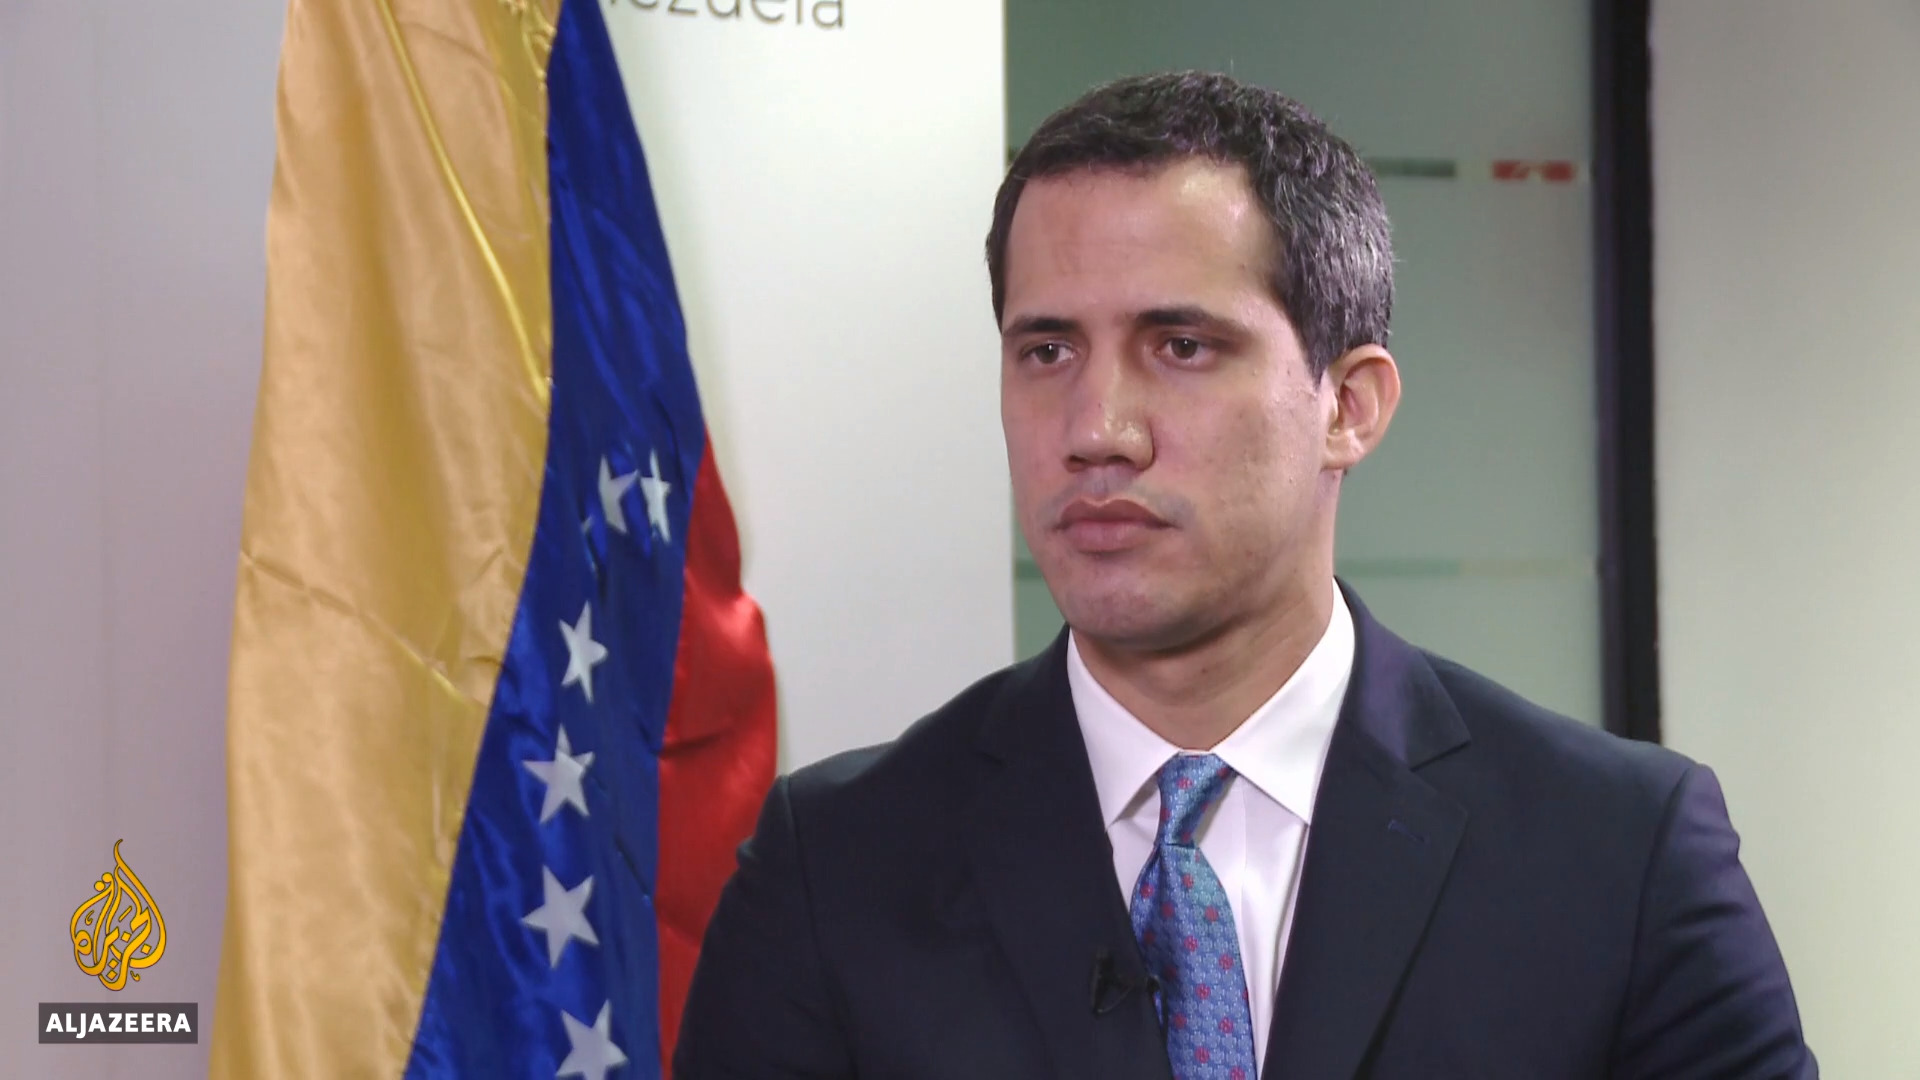 A year on, Guaido's image in trouble as opposition faces cracks